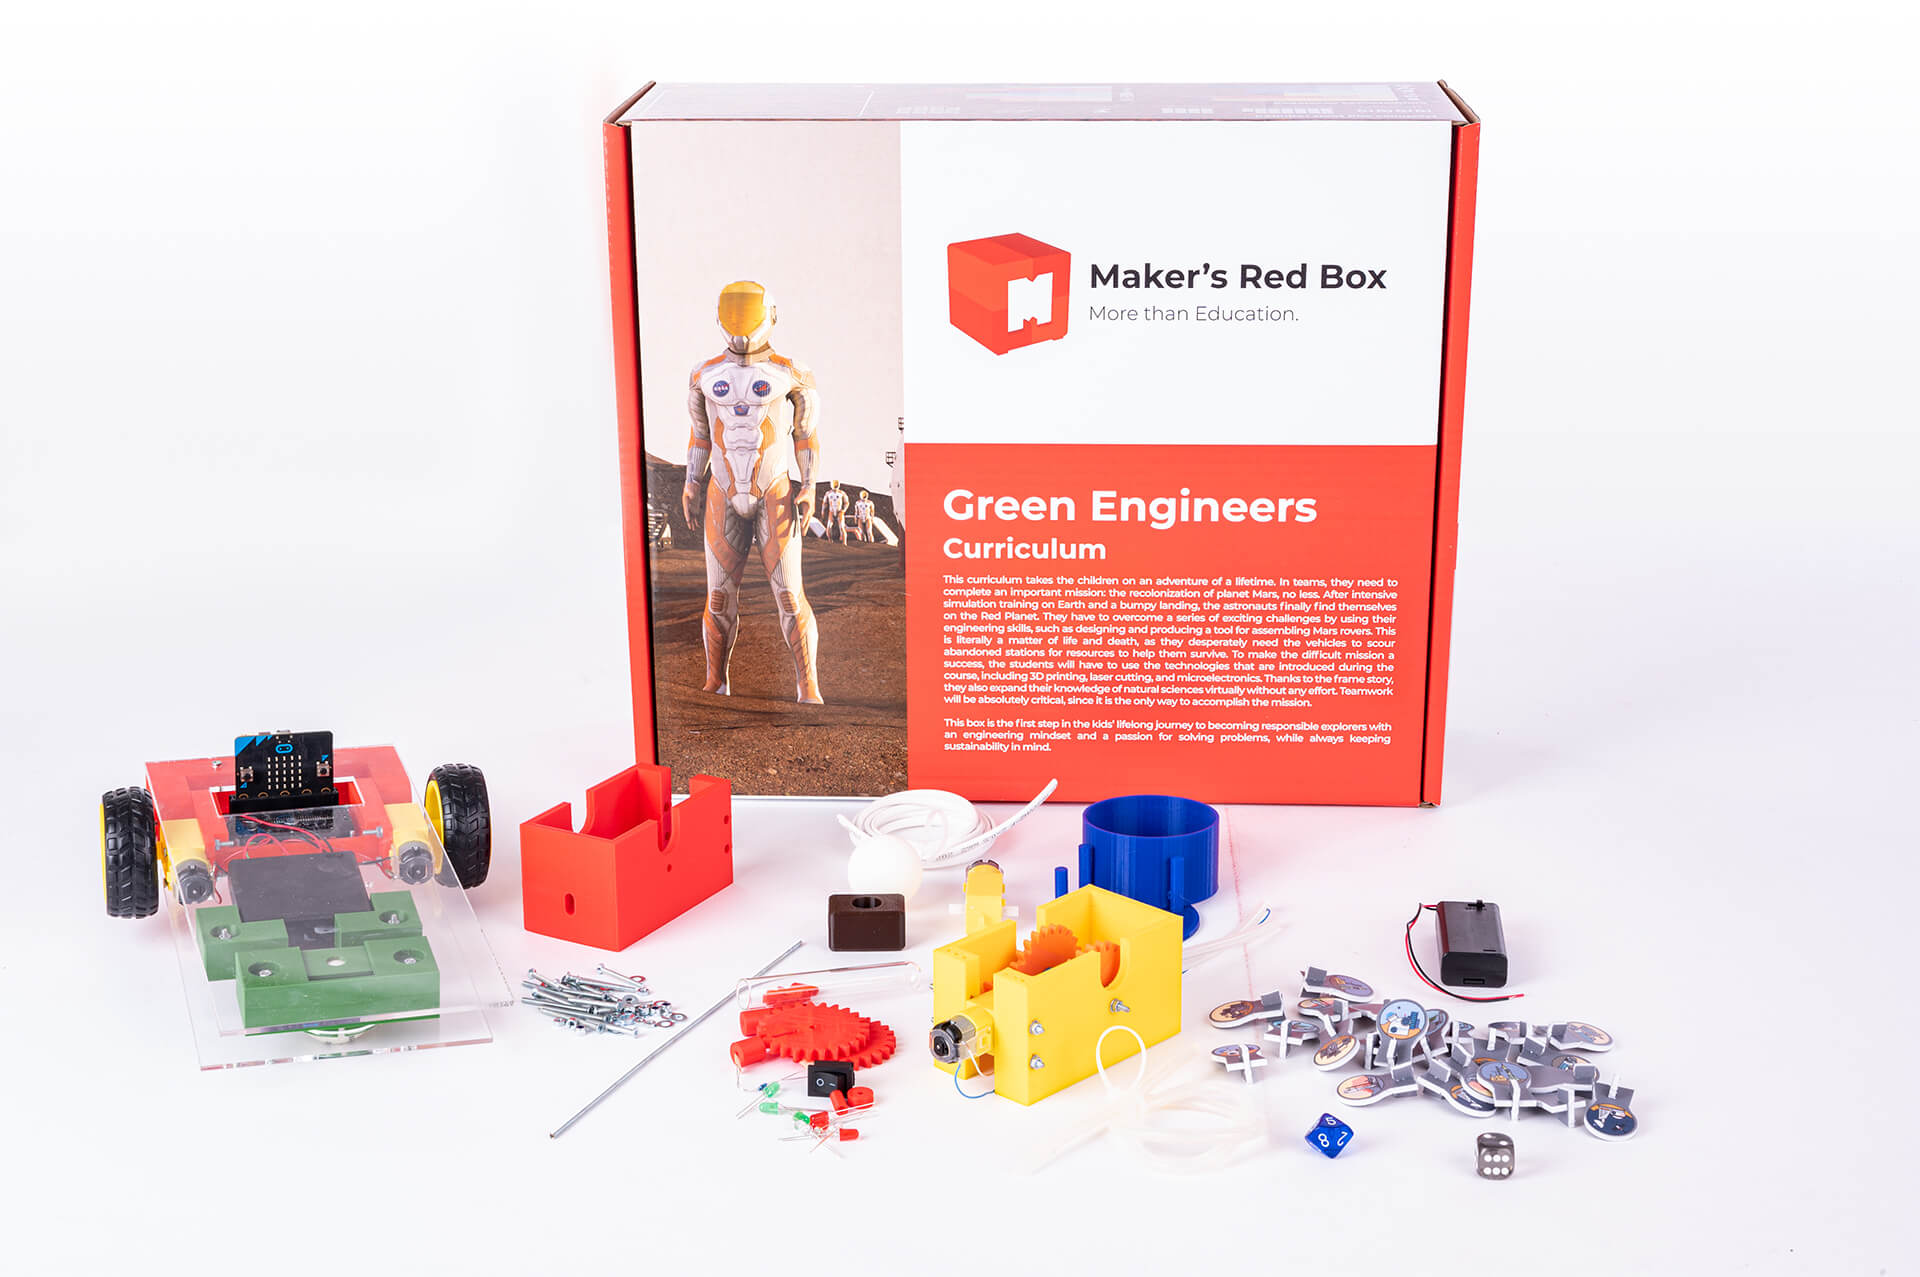 Green Engineers Makers Red Box 2